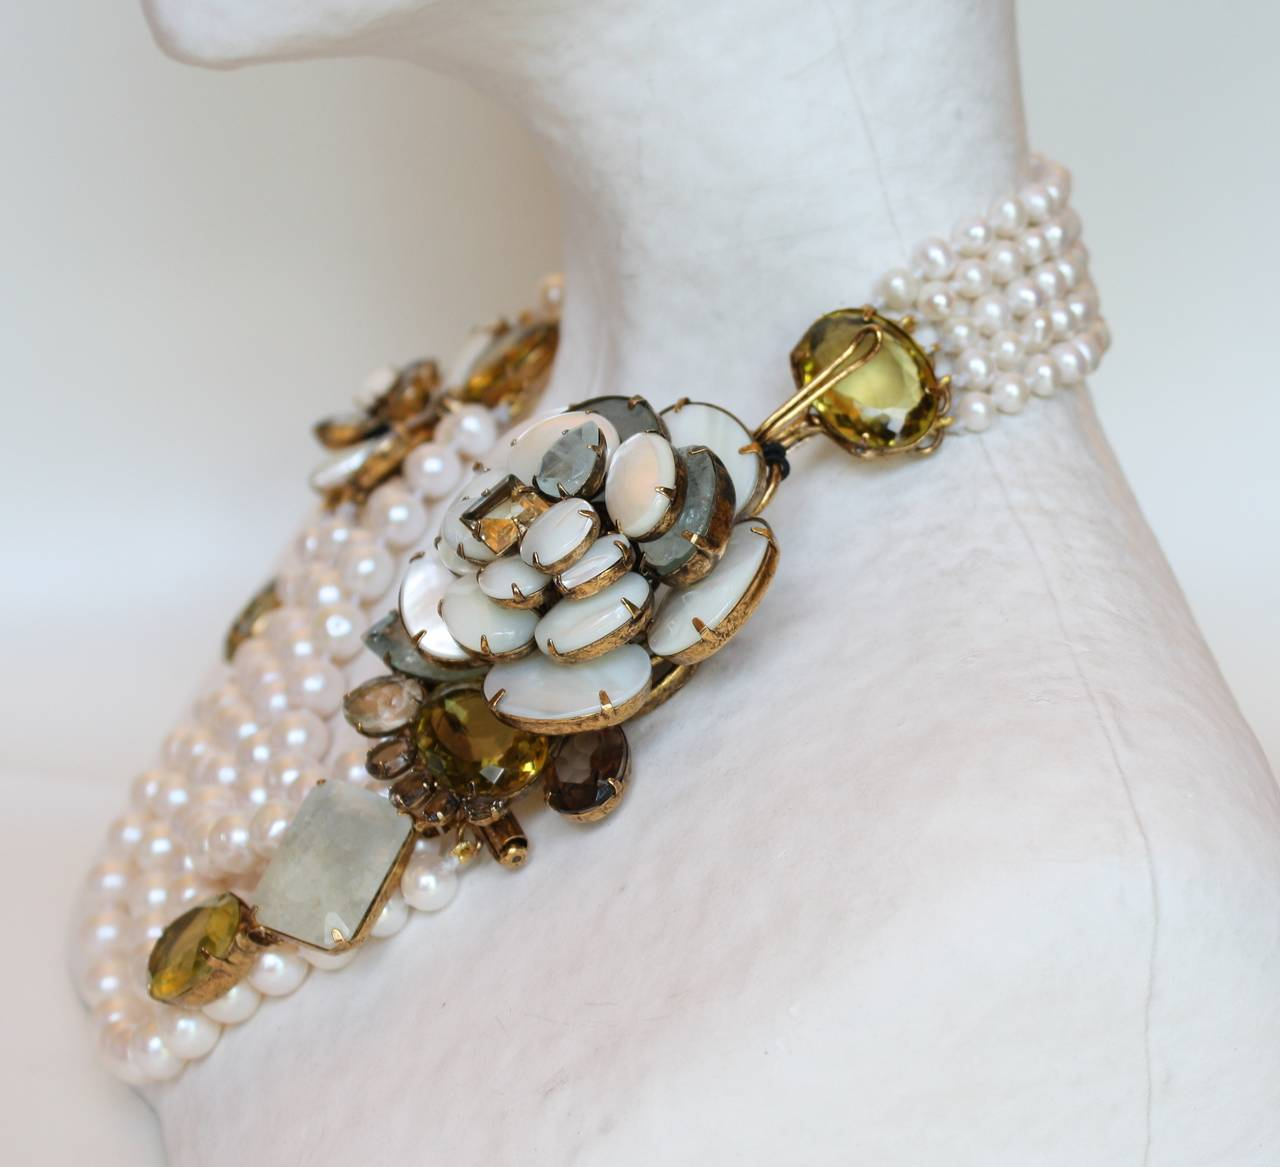 Iradj Moini necklace made with six strands of fresh water pearls with citrine, aquamarine, and mother of pearl details. Large flower is detachable and is a pin.